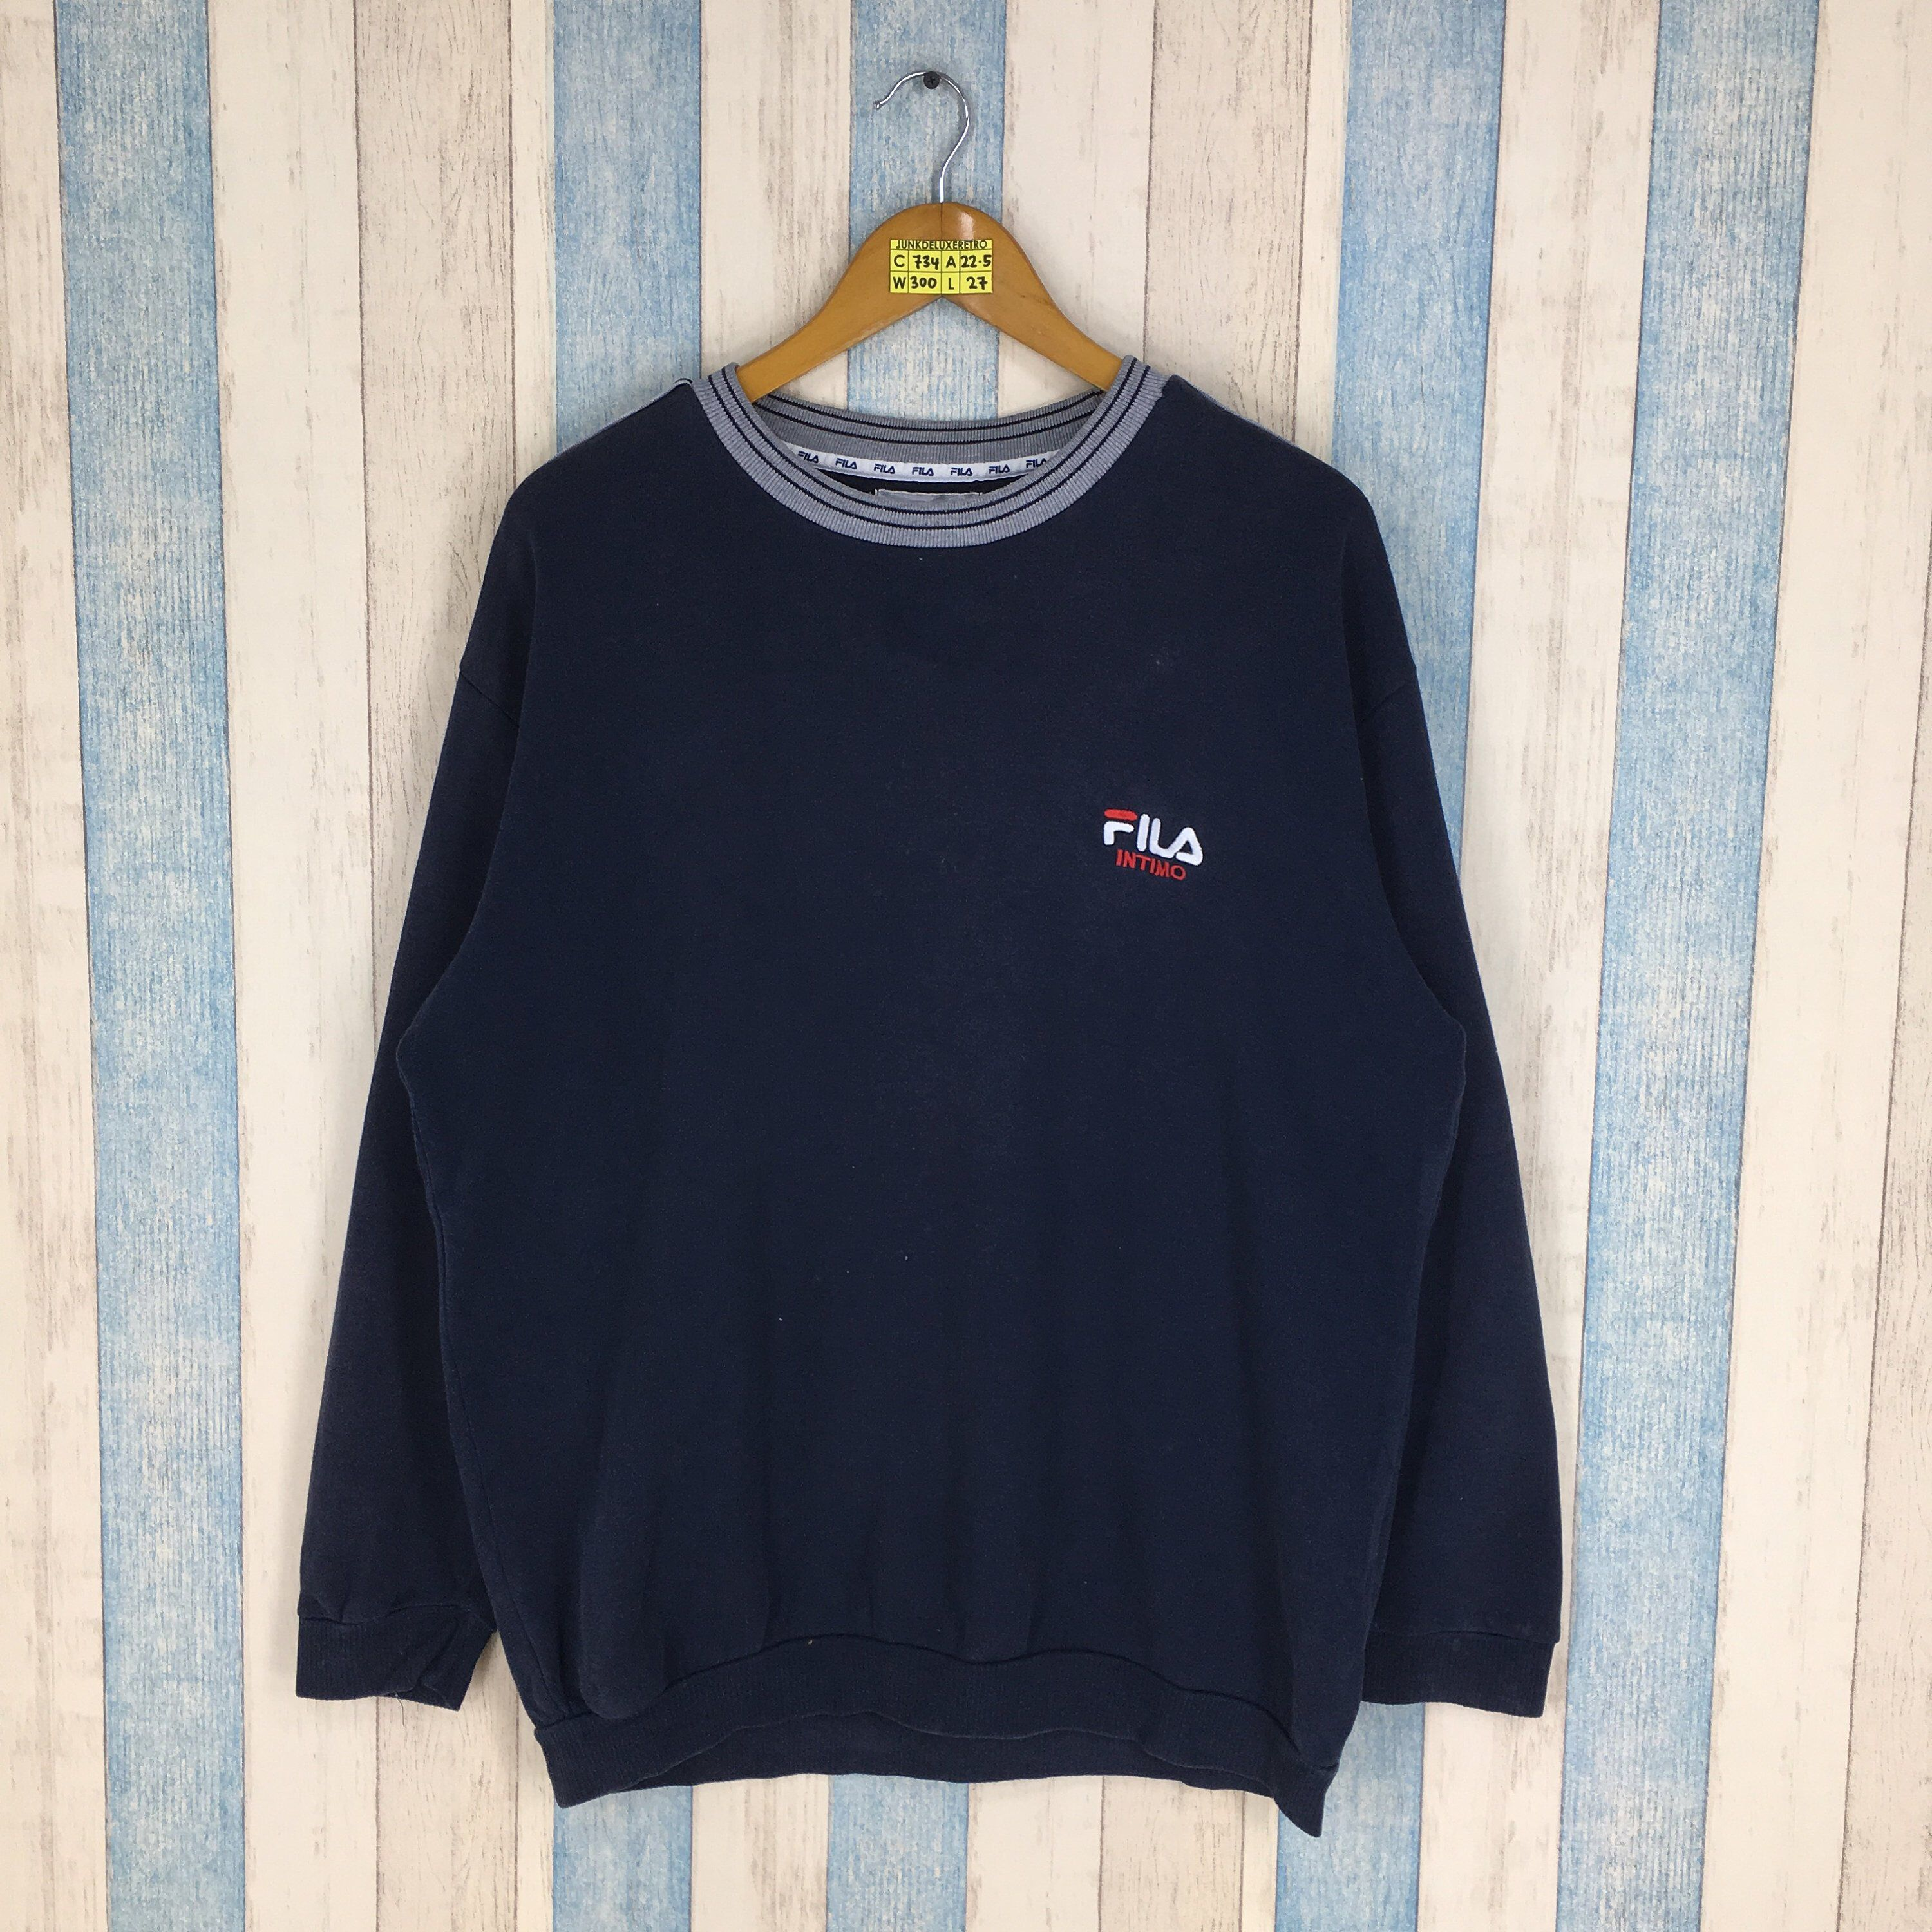 094e945a74 Excited to share the latest addition to my #etsy shop: FILA Intimo 90's  Sweater Large Vintage Fila Biella Italia Blue Jumper Sportswear Casual  Pullover ...